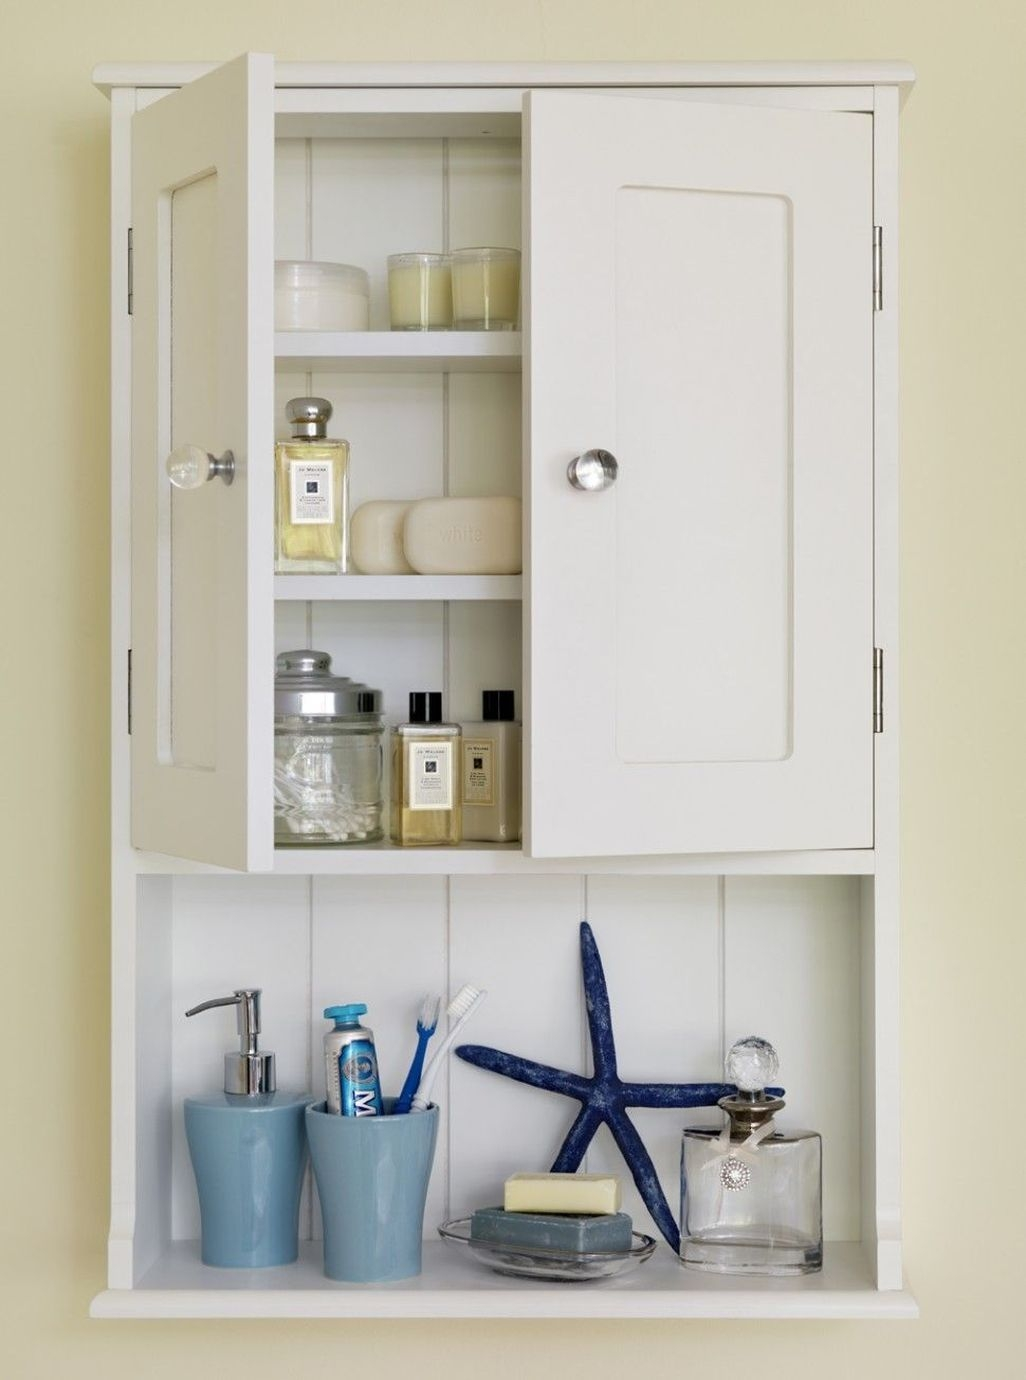 40 amazing country bathroom shelves ideas must try bathroom